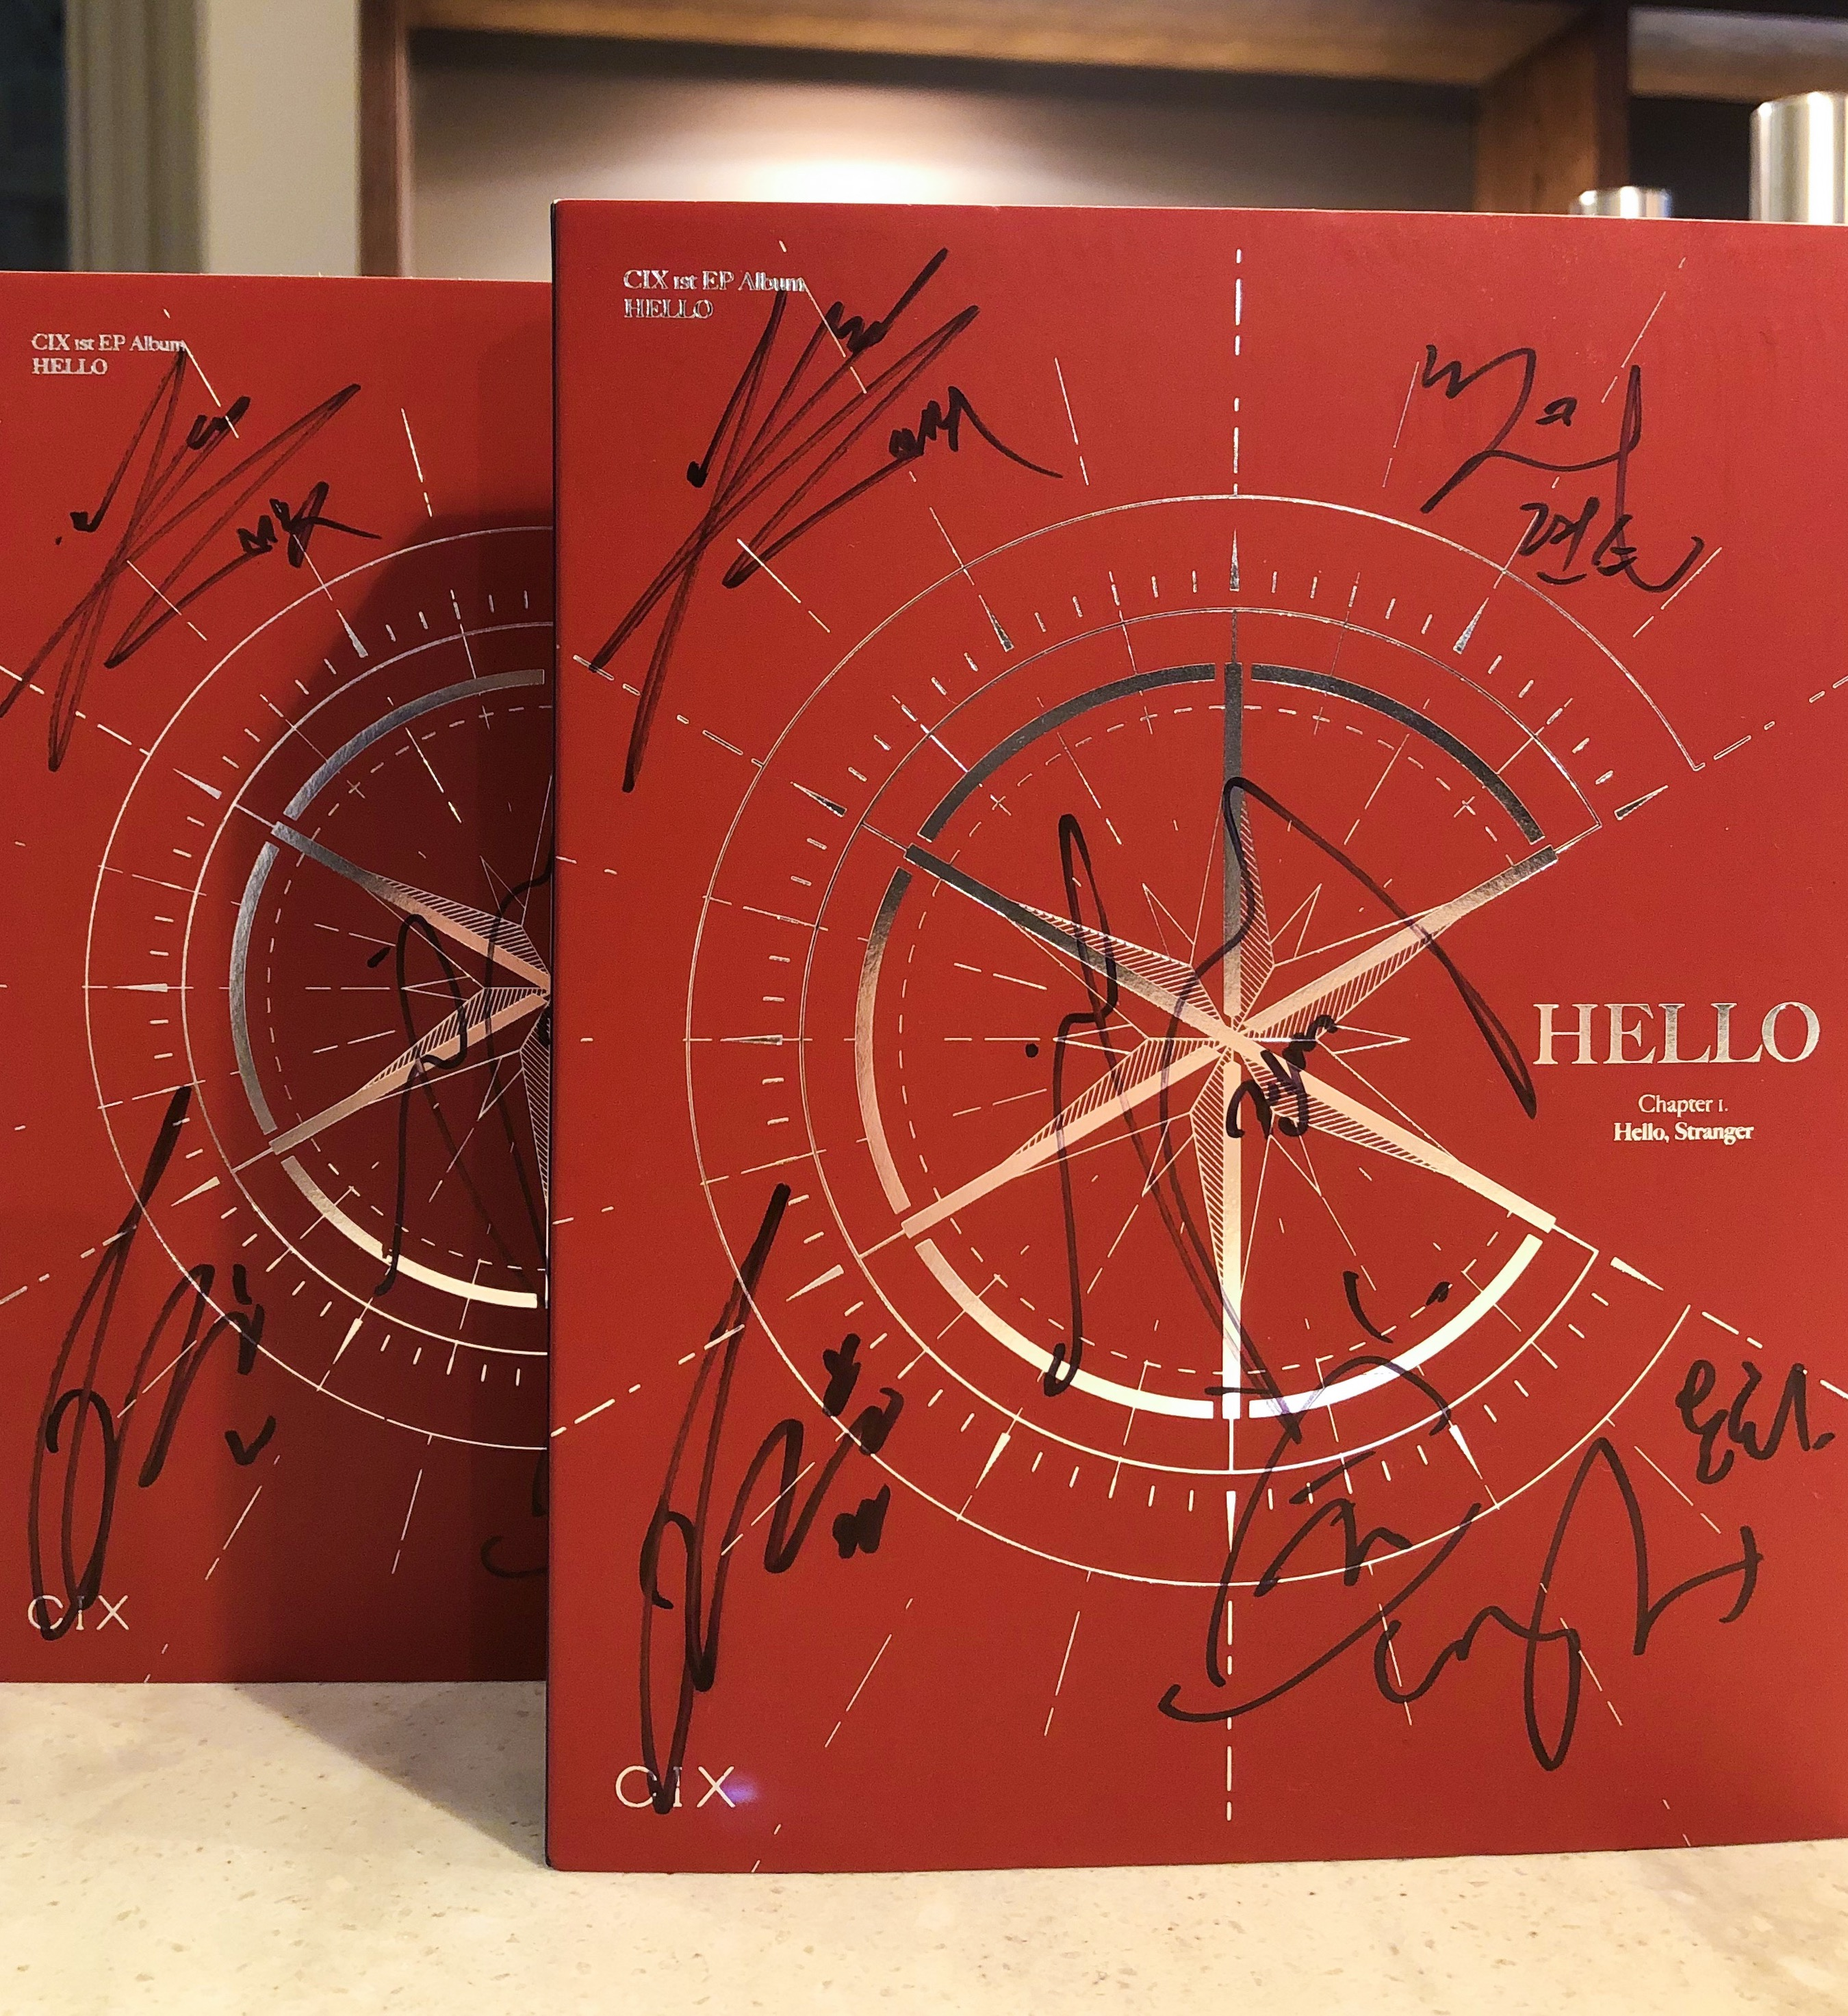 Win a Signed CIX album - 2 Winners - Giveaway Giveaway Image